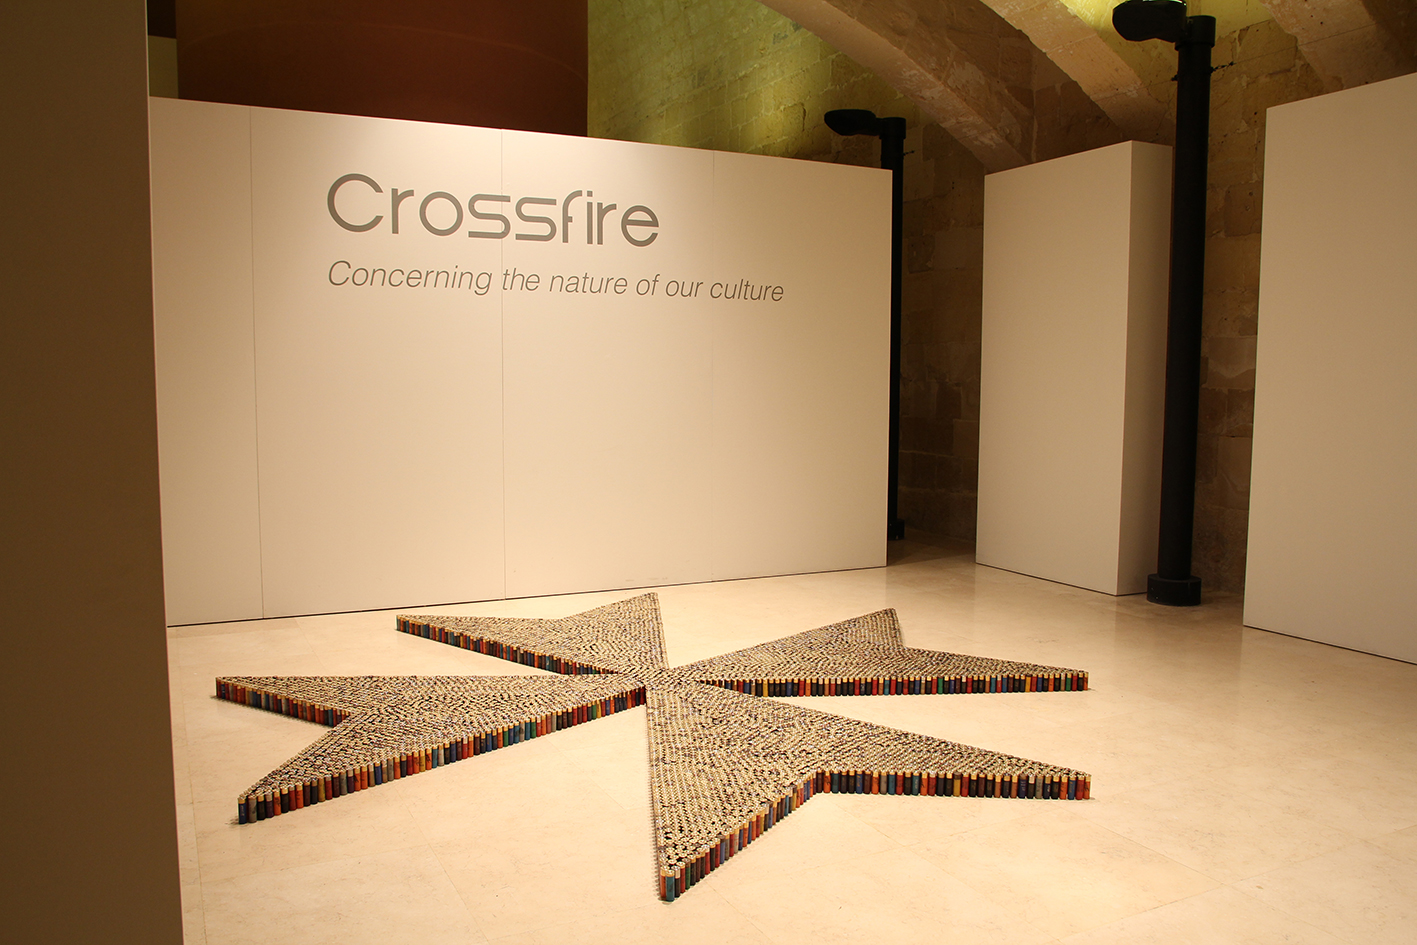 Crossfire - Concerning the nature of our culture  at Spazju Kreattiv Valletta, Malta (2015).